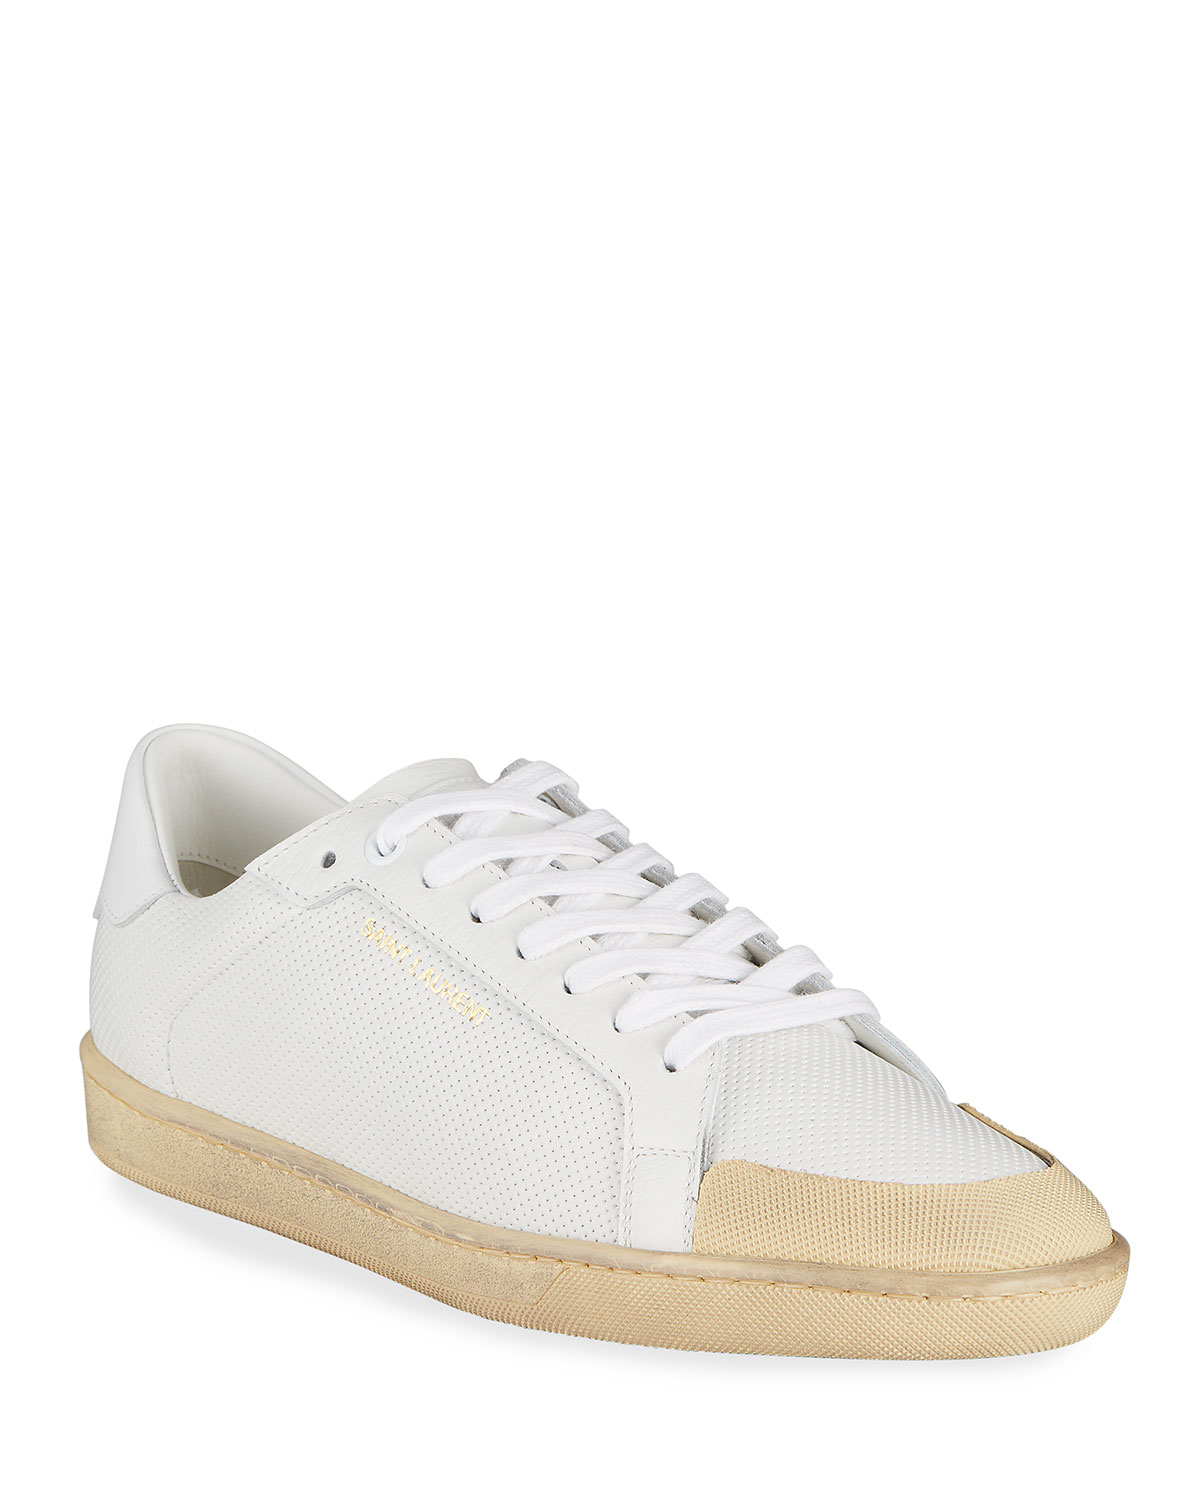 Saint Laurent PERFORATED LOW-TOP SNEAKERS